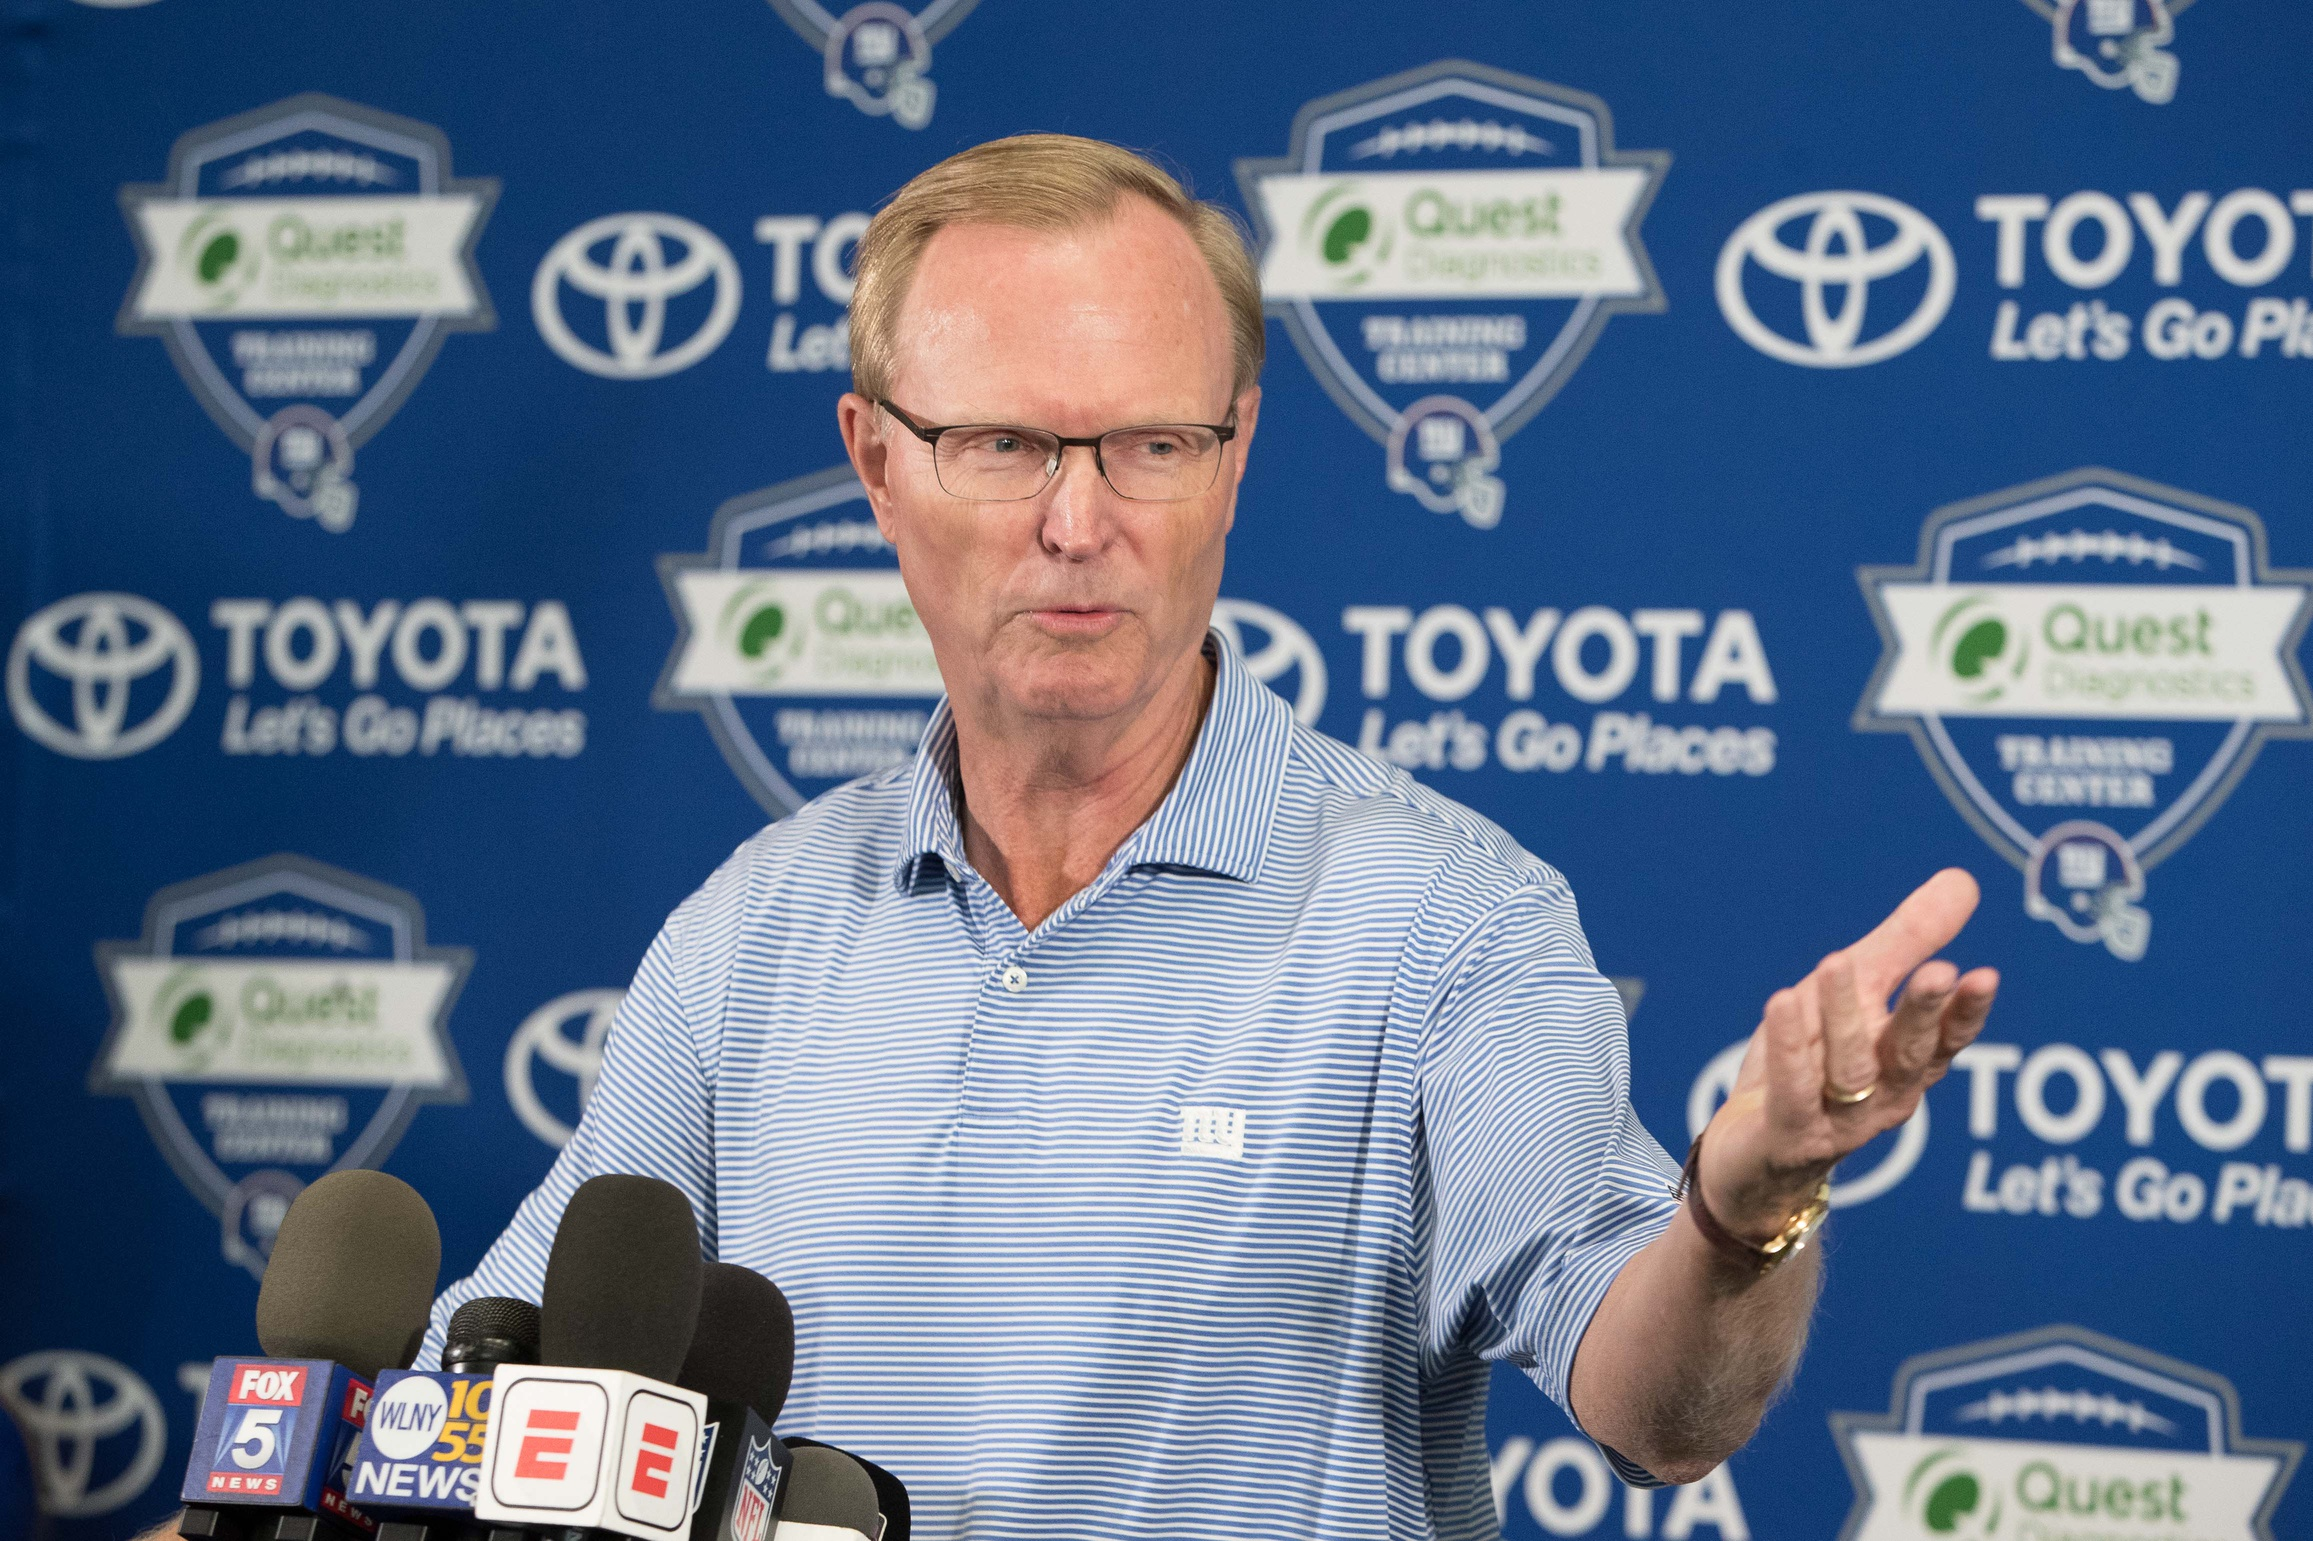 Quarterback situation has a familiar feel for Giants boss John Mara